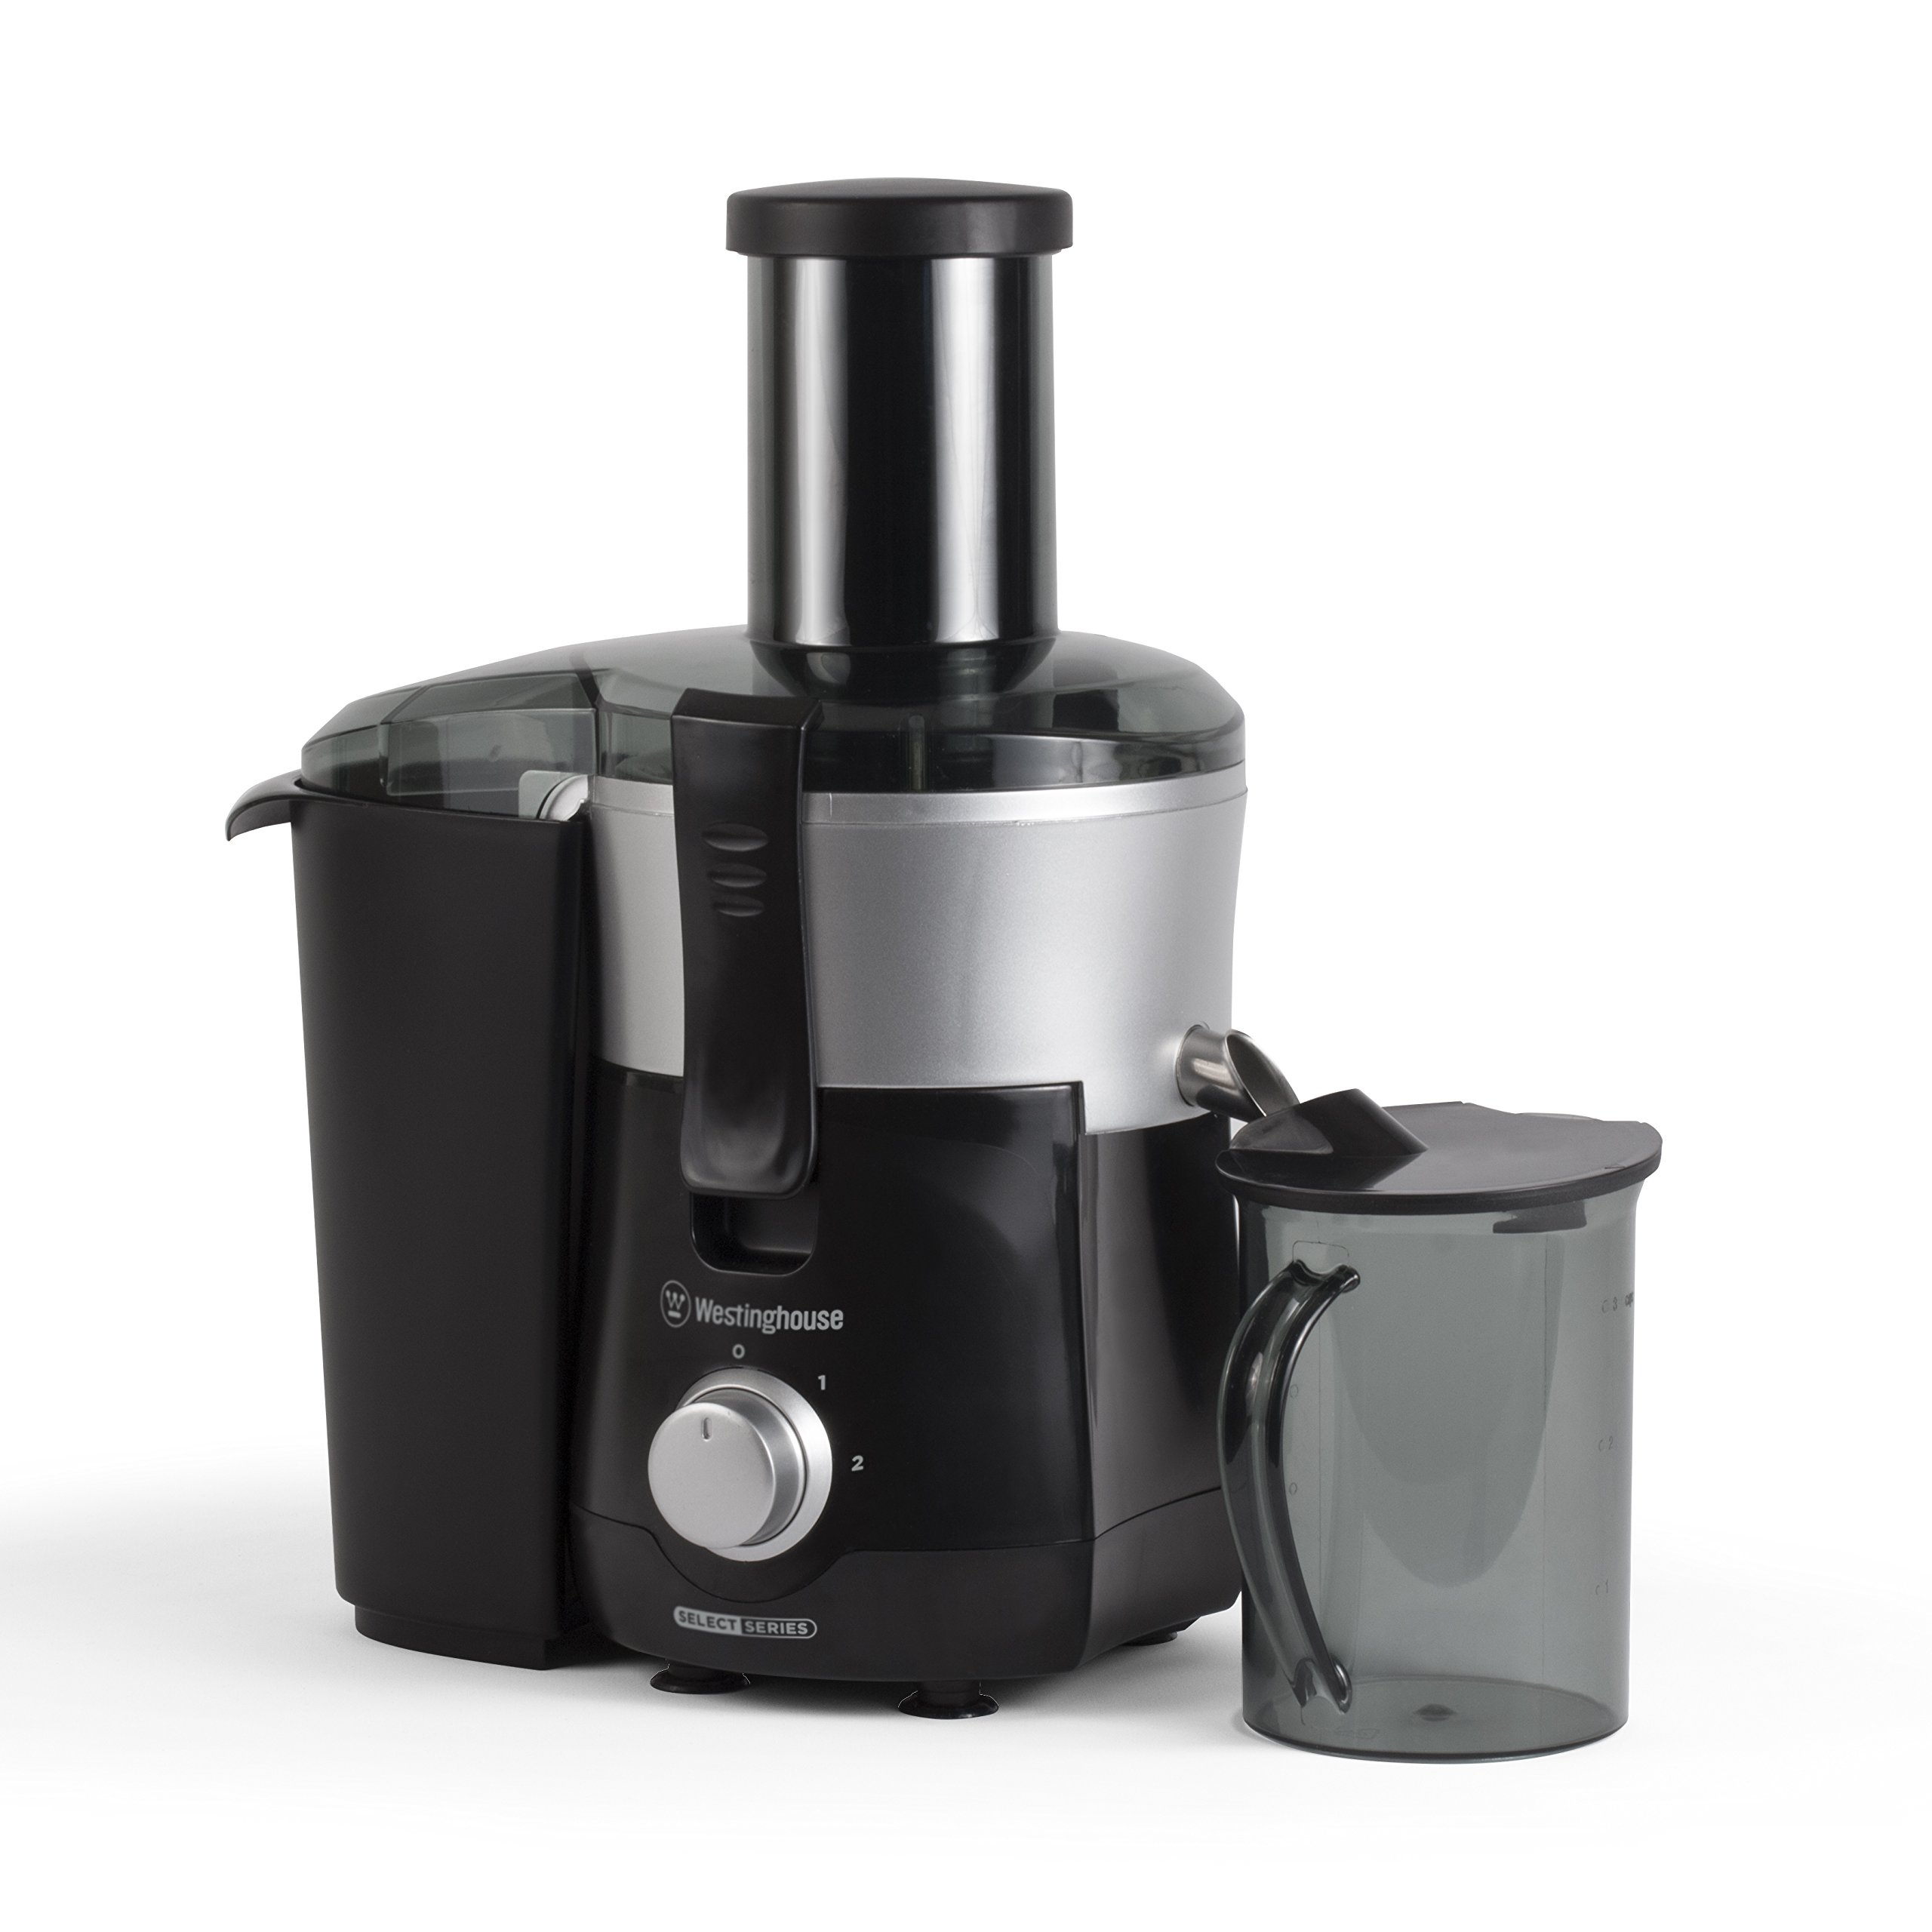 Westinghouse COMINHKPR100901 WJE2BSLA Select Series 2 Speed Fruit & Vegetable Juice Extractor with Custom Pitcher, Black by Westinghouse (Image #2)